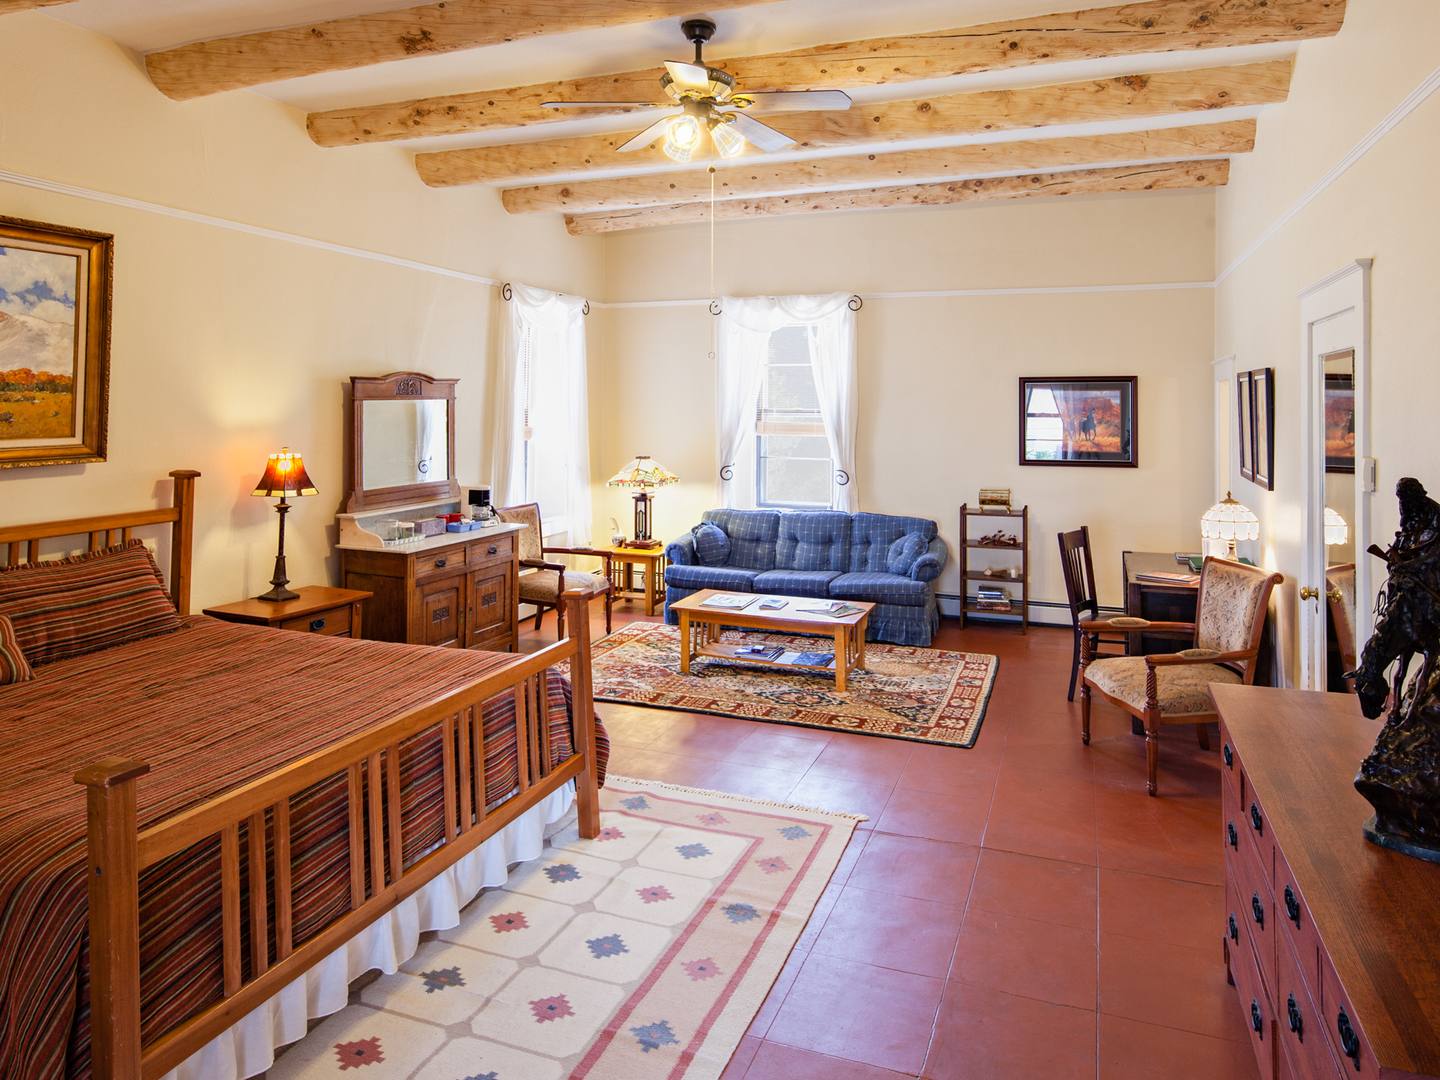 A living room filled with furniture and a fireplace at Casa del Gavilan Historic Inn.